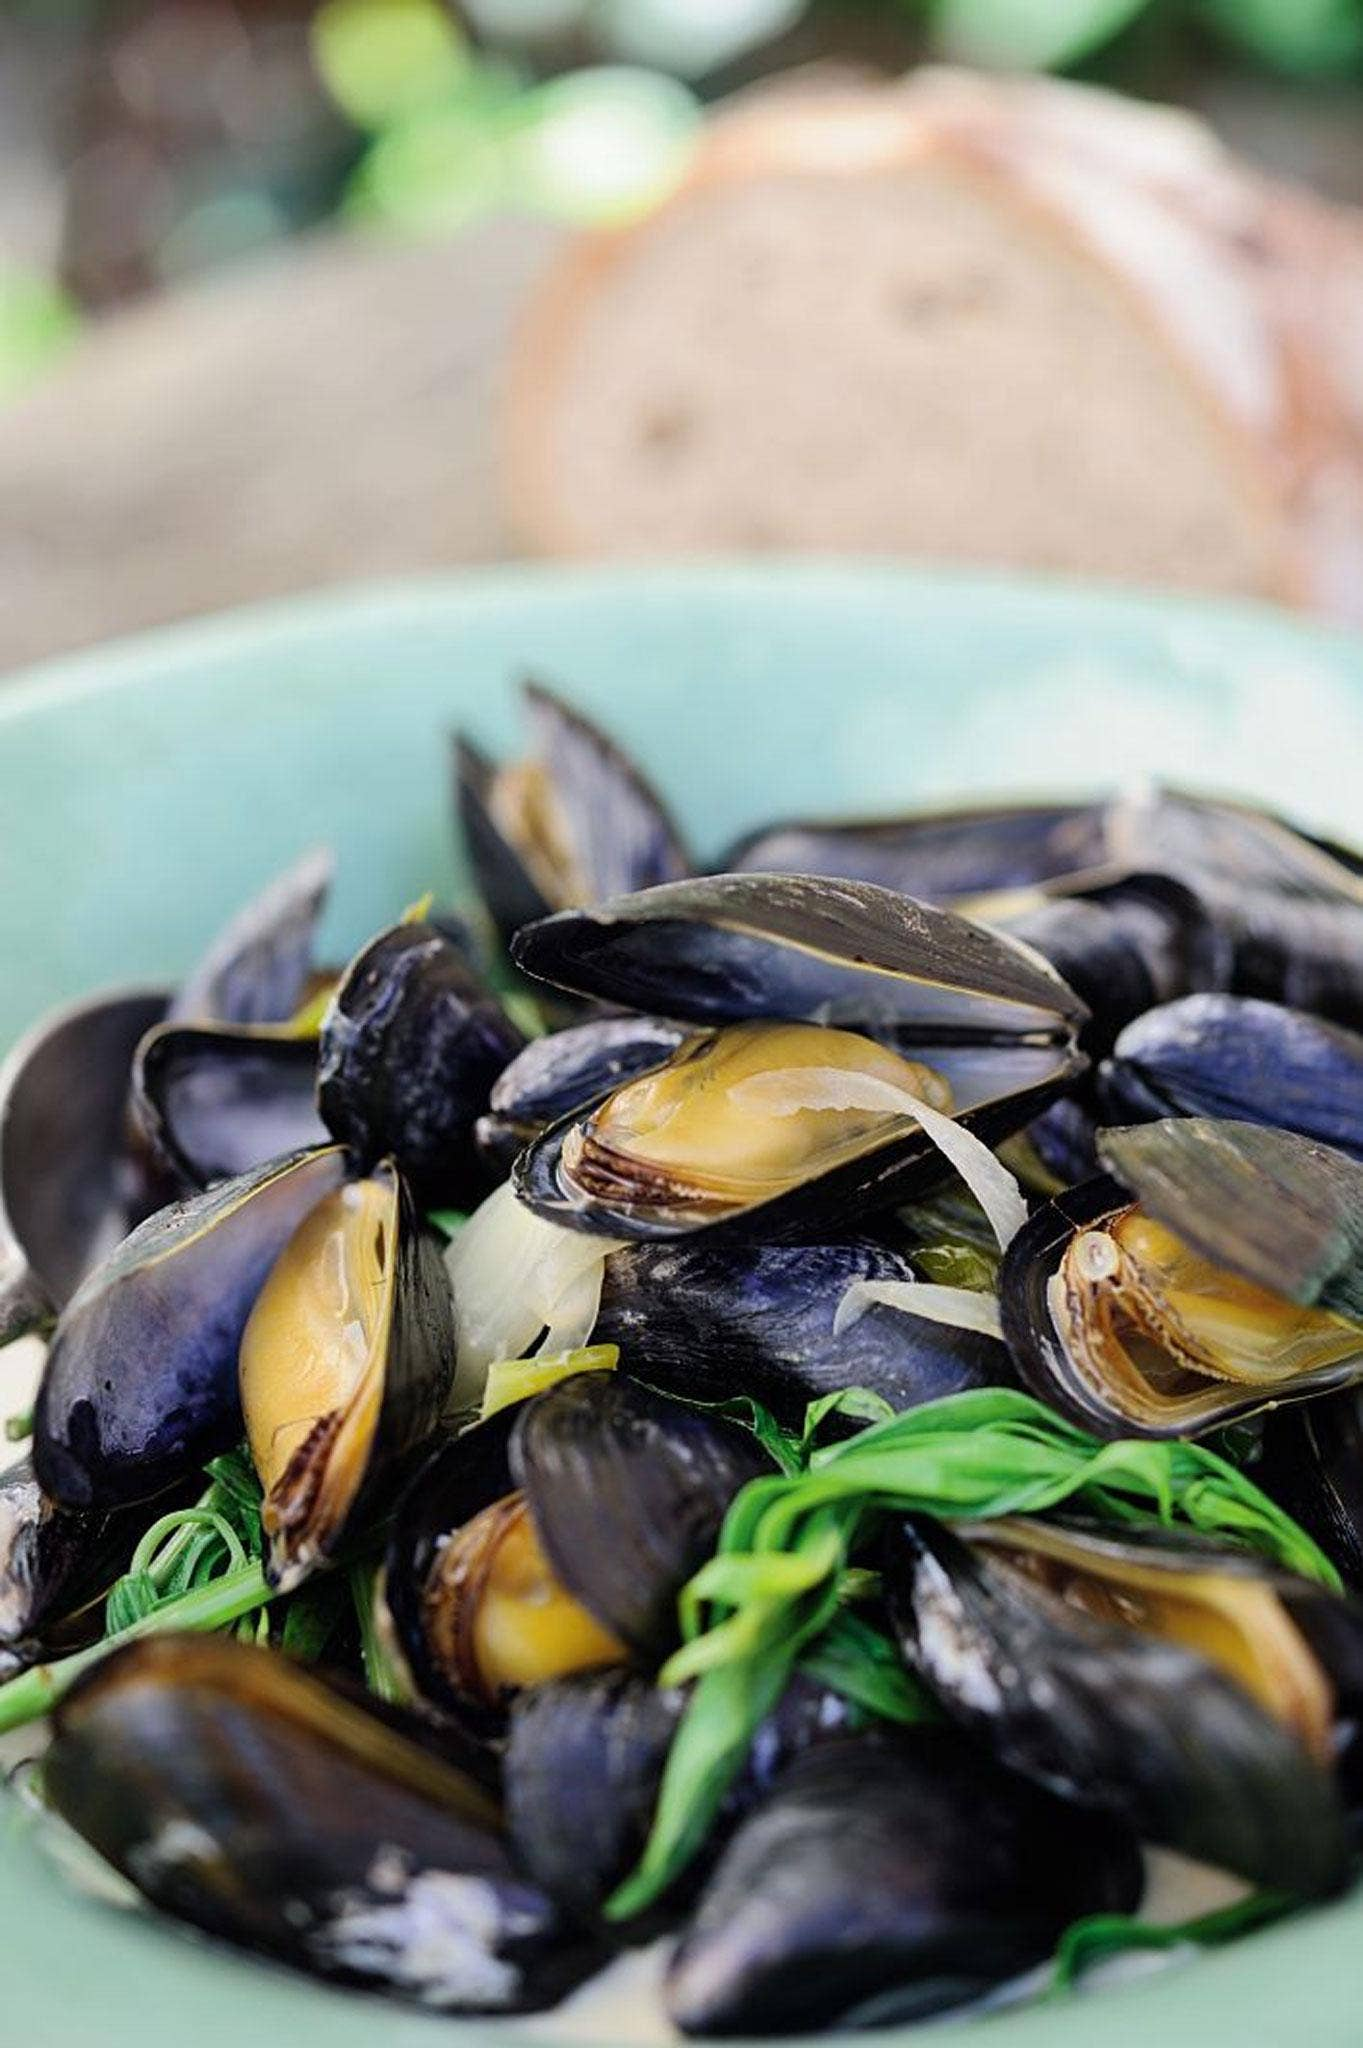 Mussels in cider with tarragon, taken from 'The Ethicurean Cookbook'